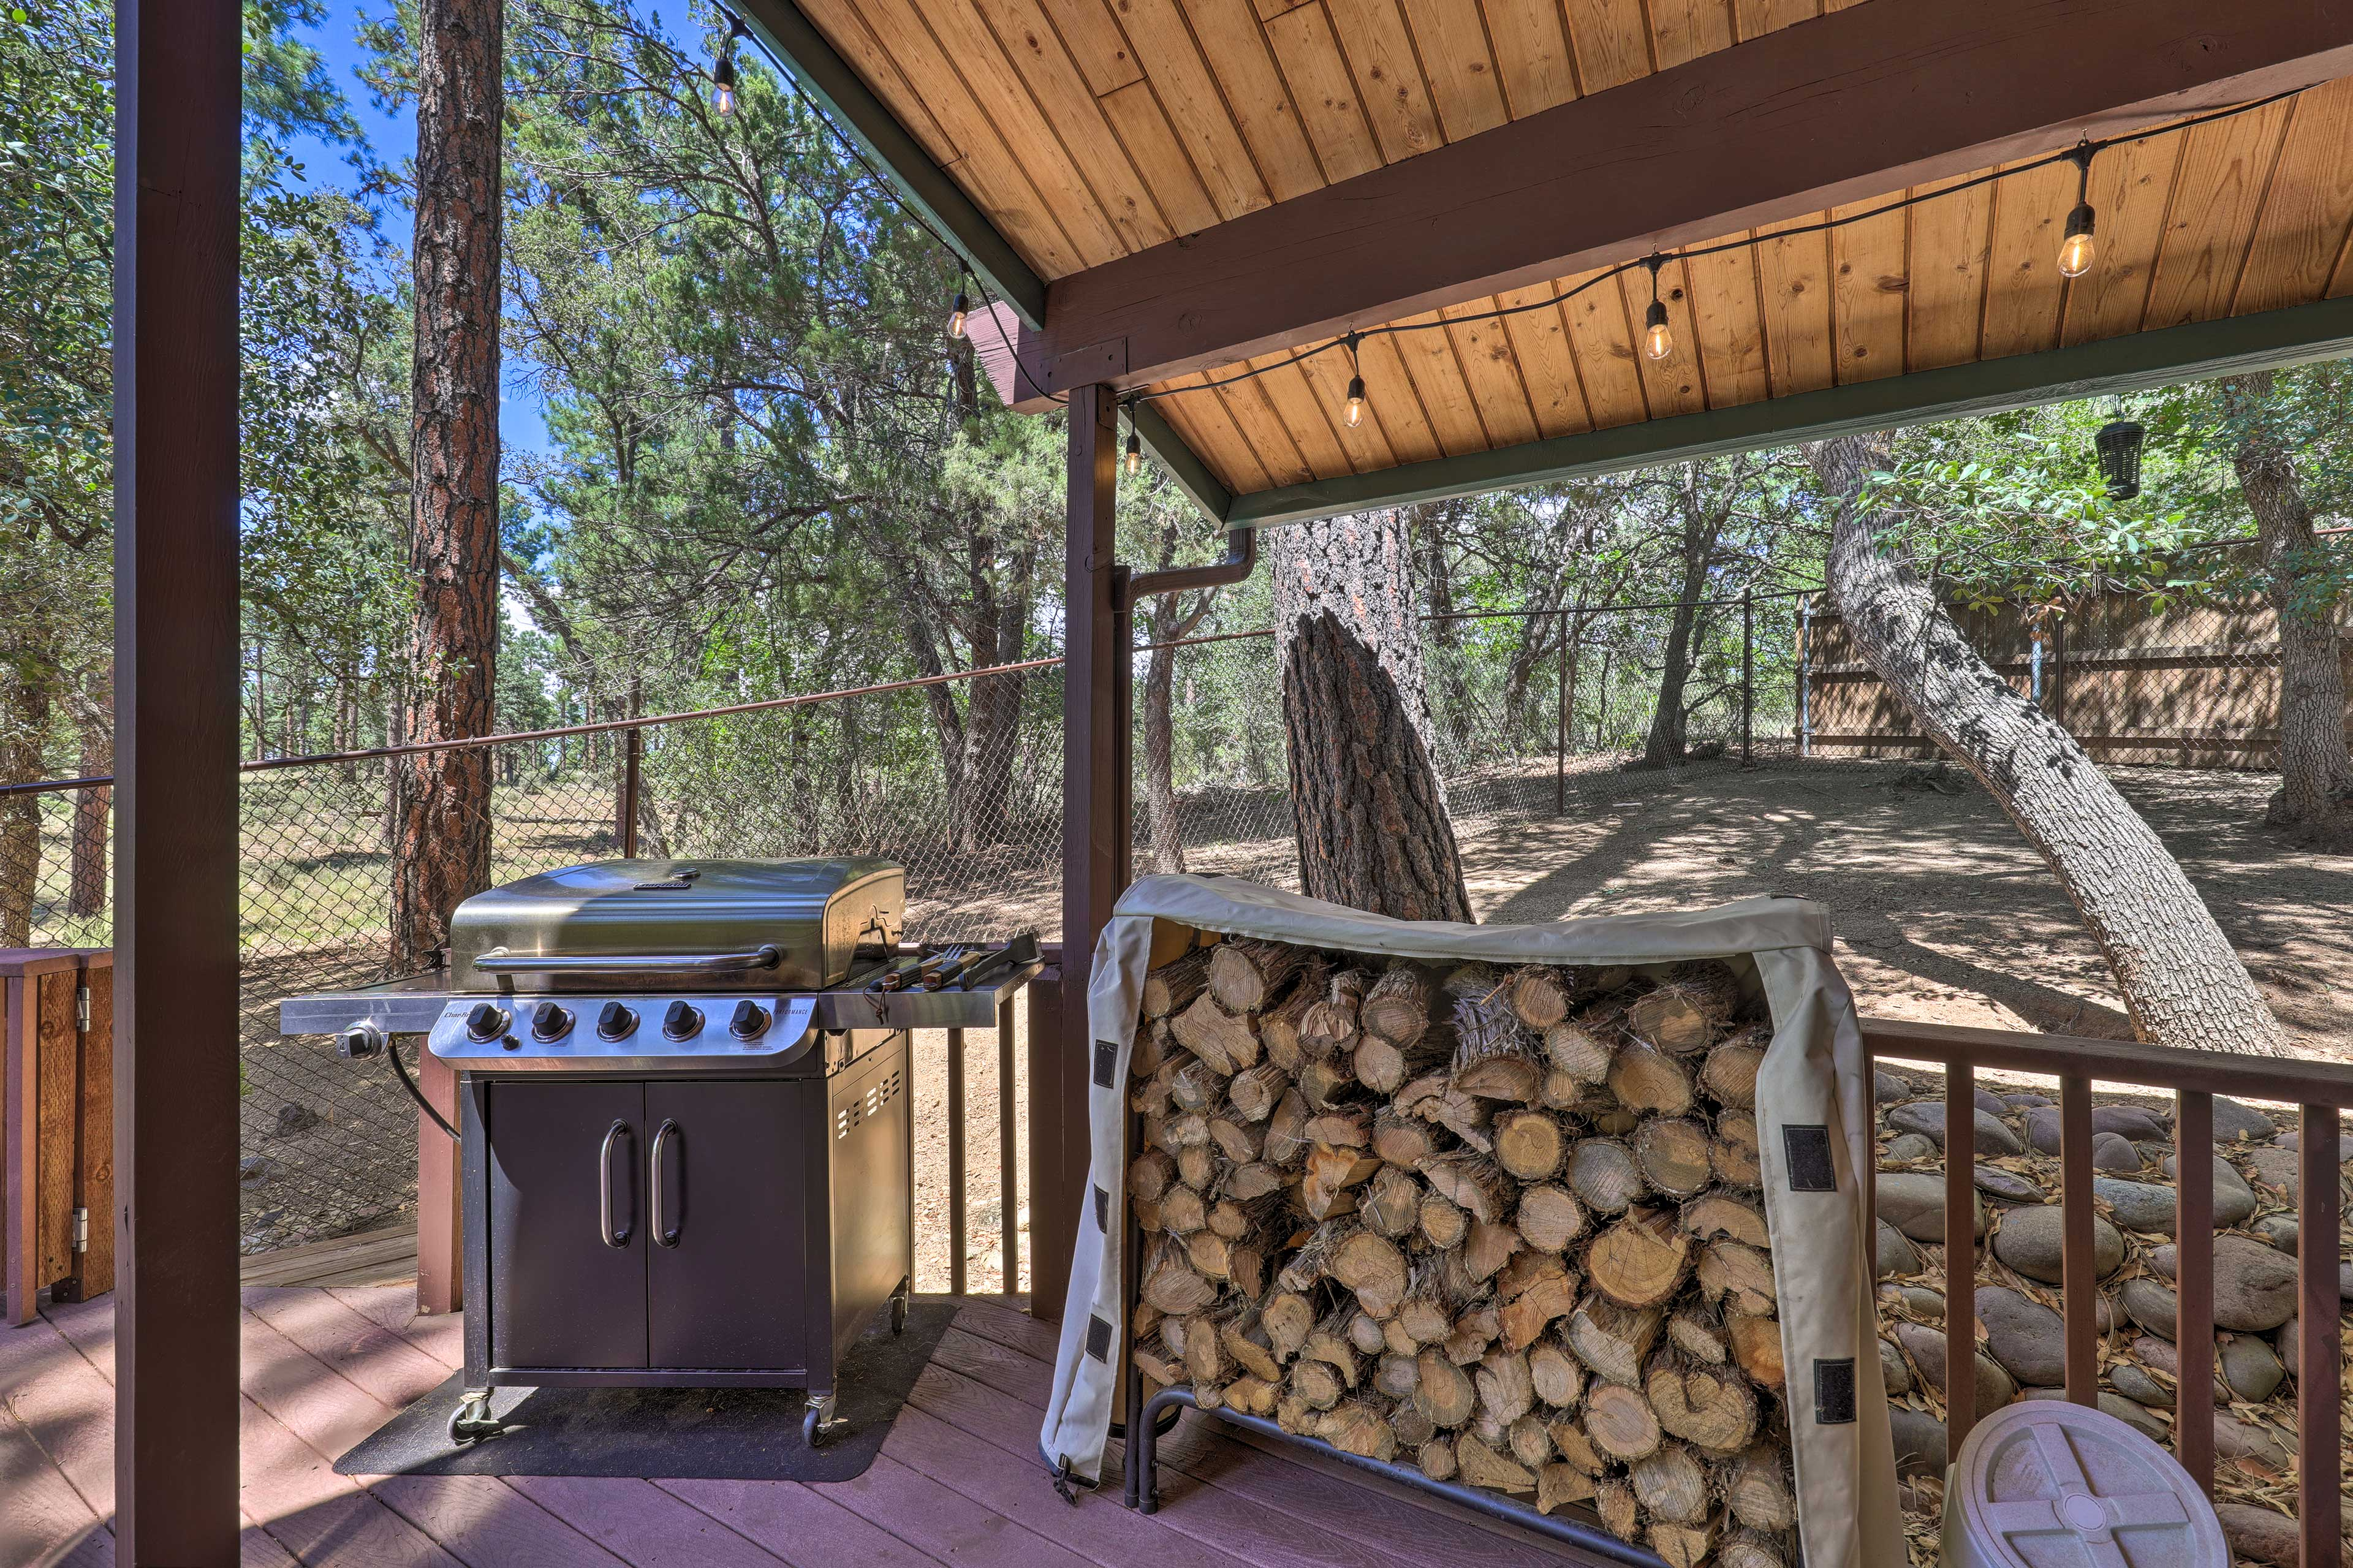 Fire up the gas grill for a cookout and enjoy the surrounding nature.